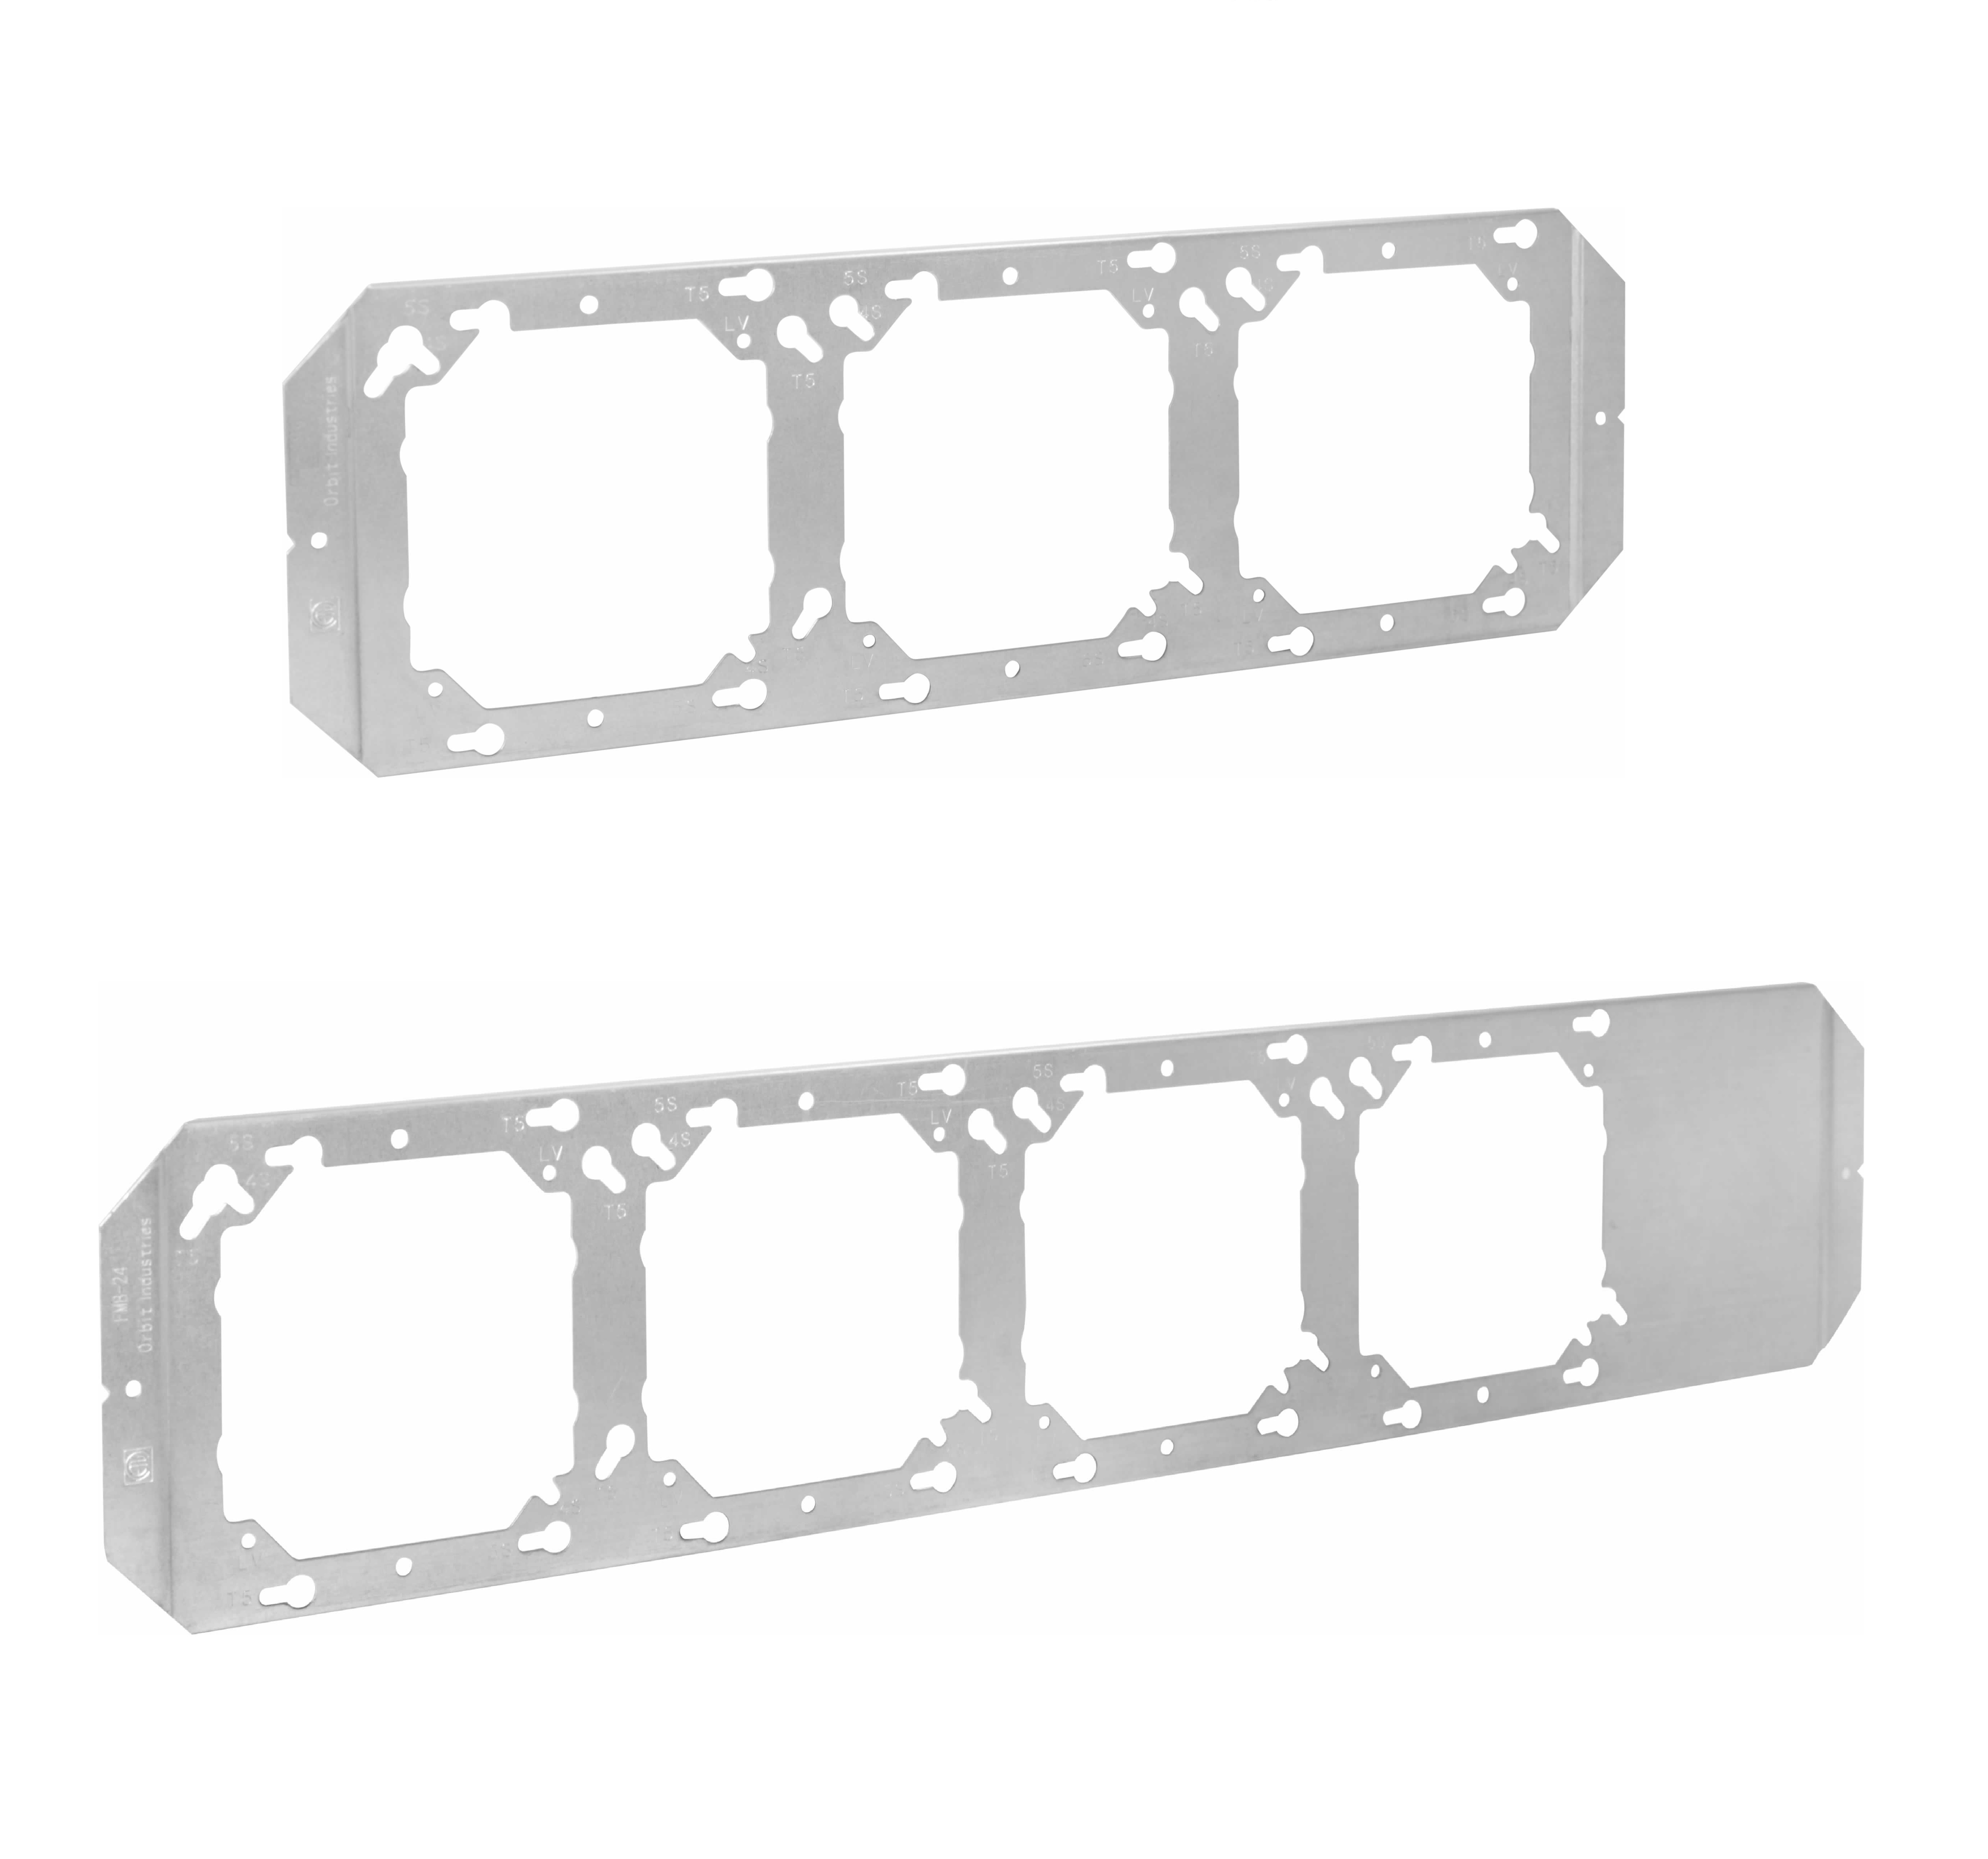 Fixed Position Box Mounting Brackets